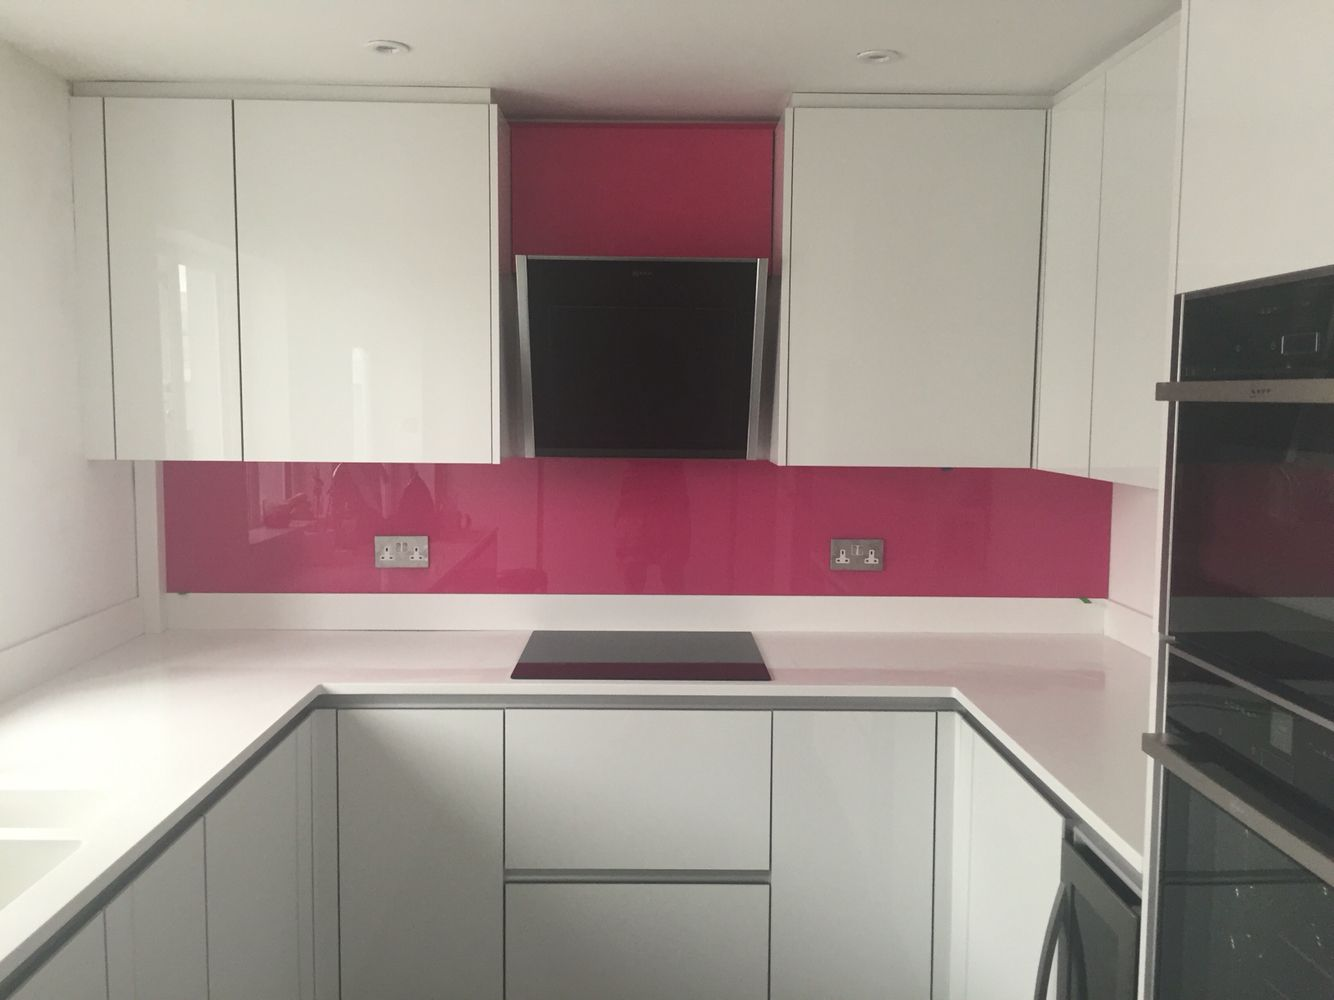 Pink Countertops Kitchen Appliance Packages Stainless Steel My Glass Splashback With White High Gloss